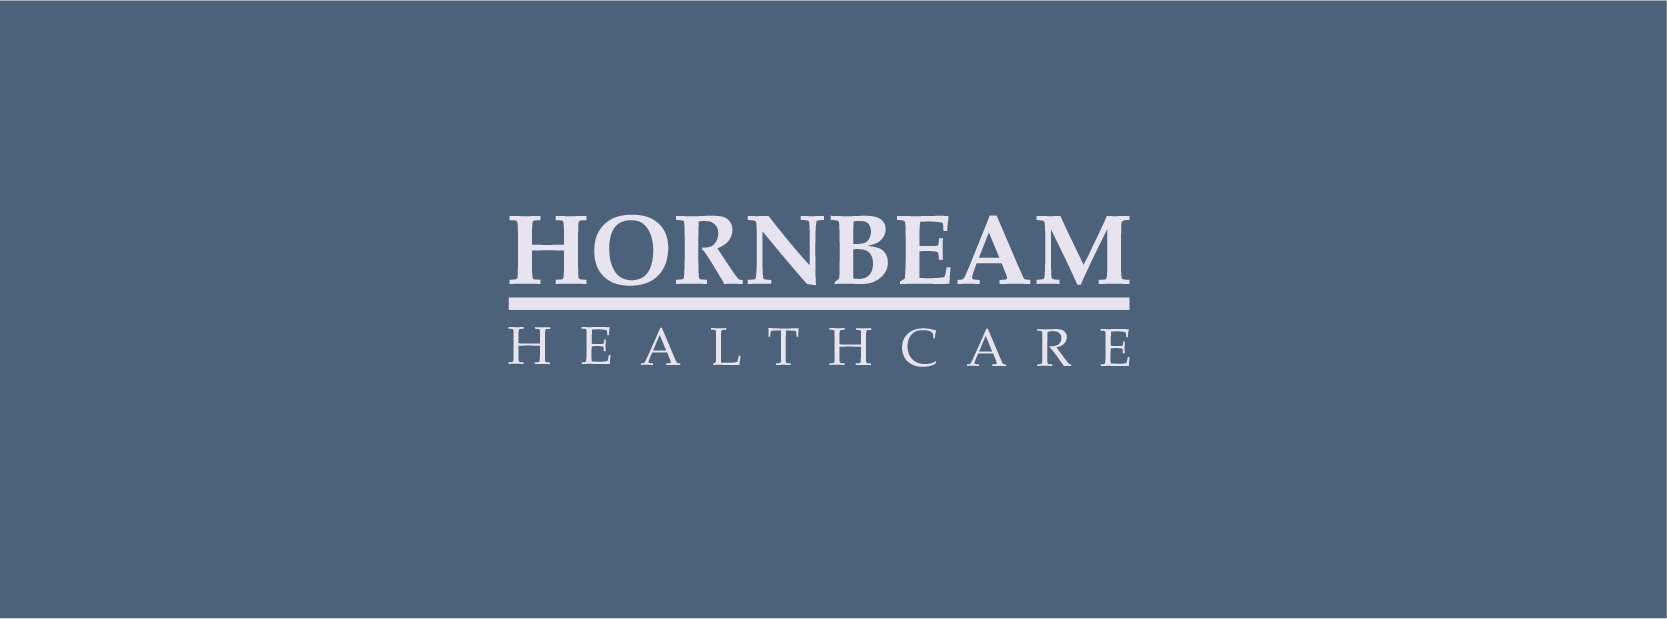 Healthcare brand in blue